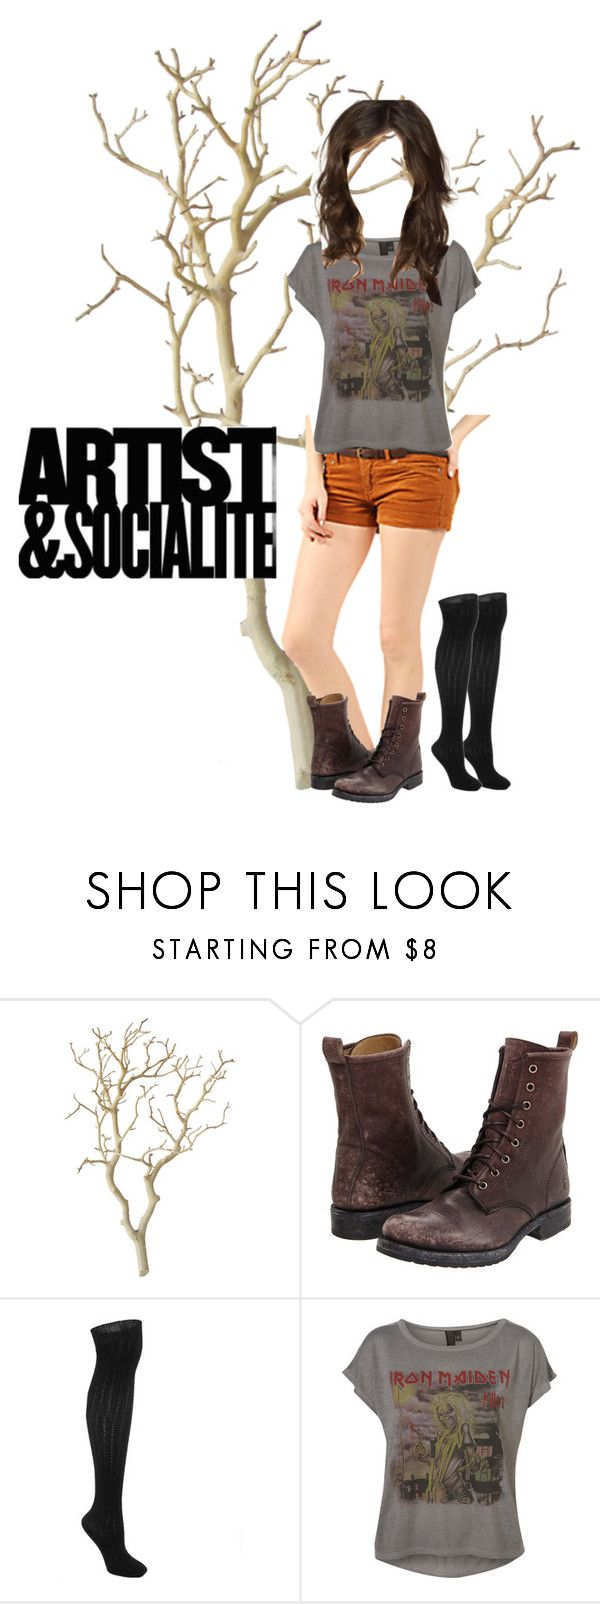 """Shorts from Stitches :)"" by boxingclever ❤ liked on Polyvore featuring Frye, Bakers, combat boots, heavy metal, stitches, shorts, tee, band shirt and wavy hair"